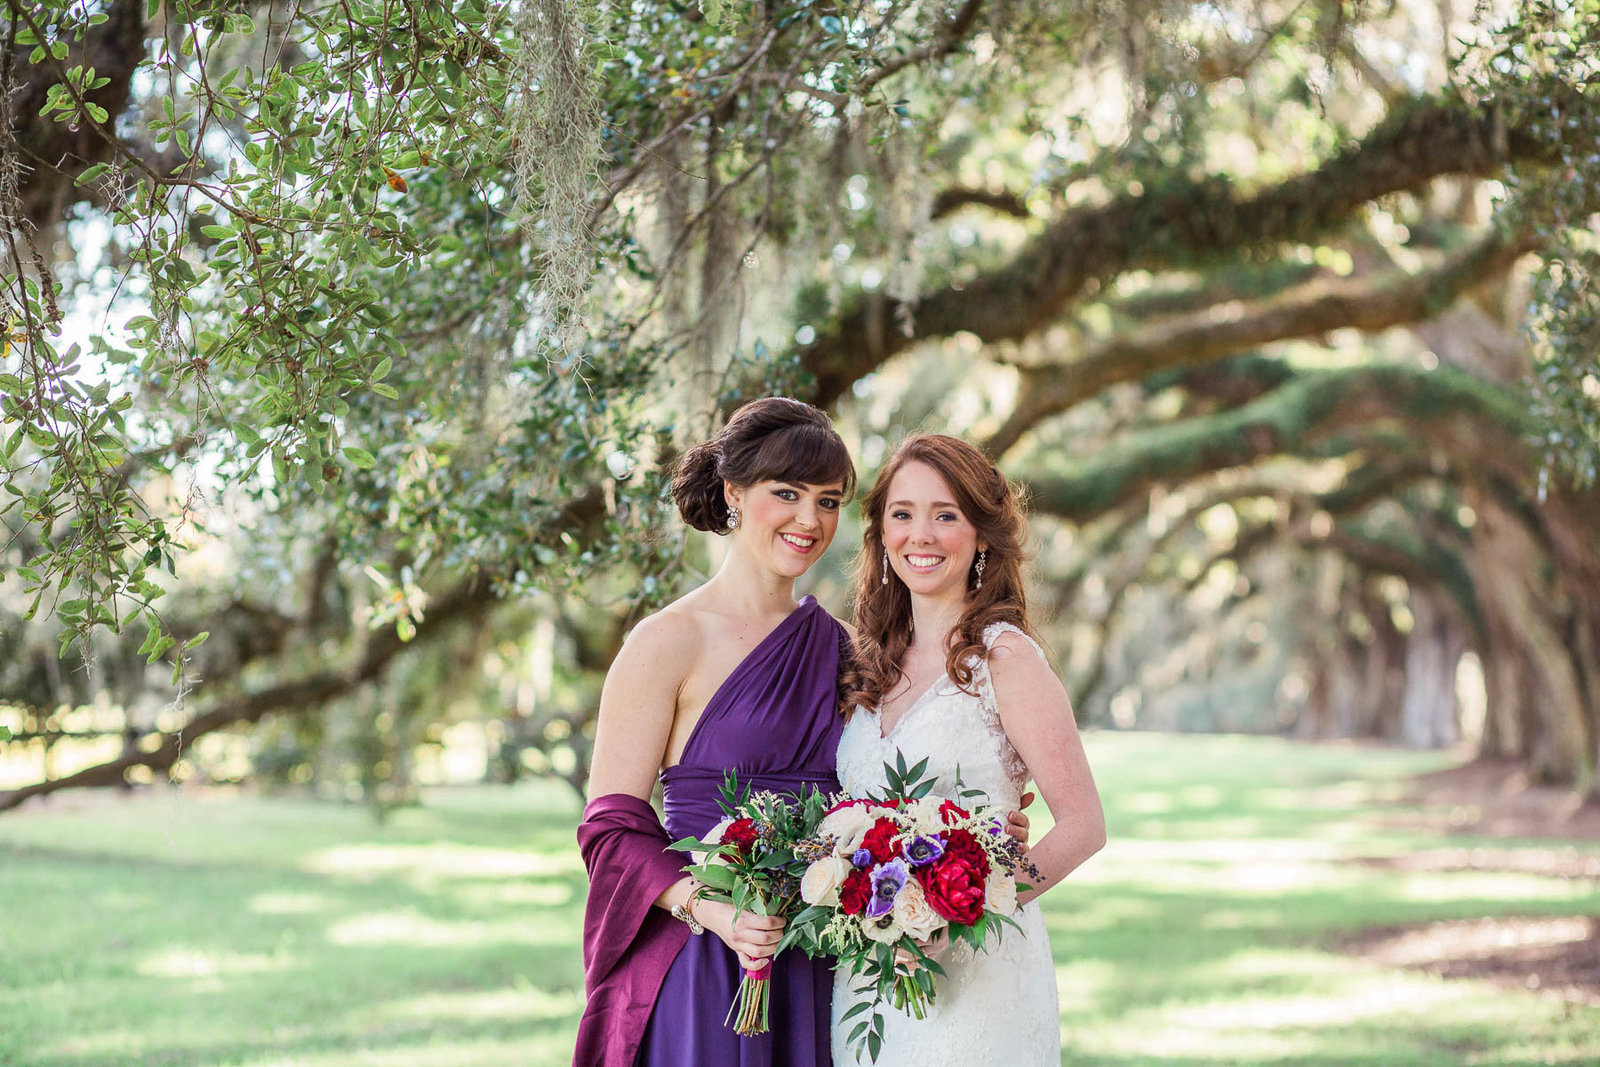 Bride and bridesmaids stand on avenue of oaks, Boone Hall Plantation, Charleston, South Carolina. Kate Timbers Photography.